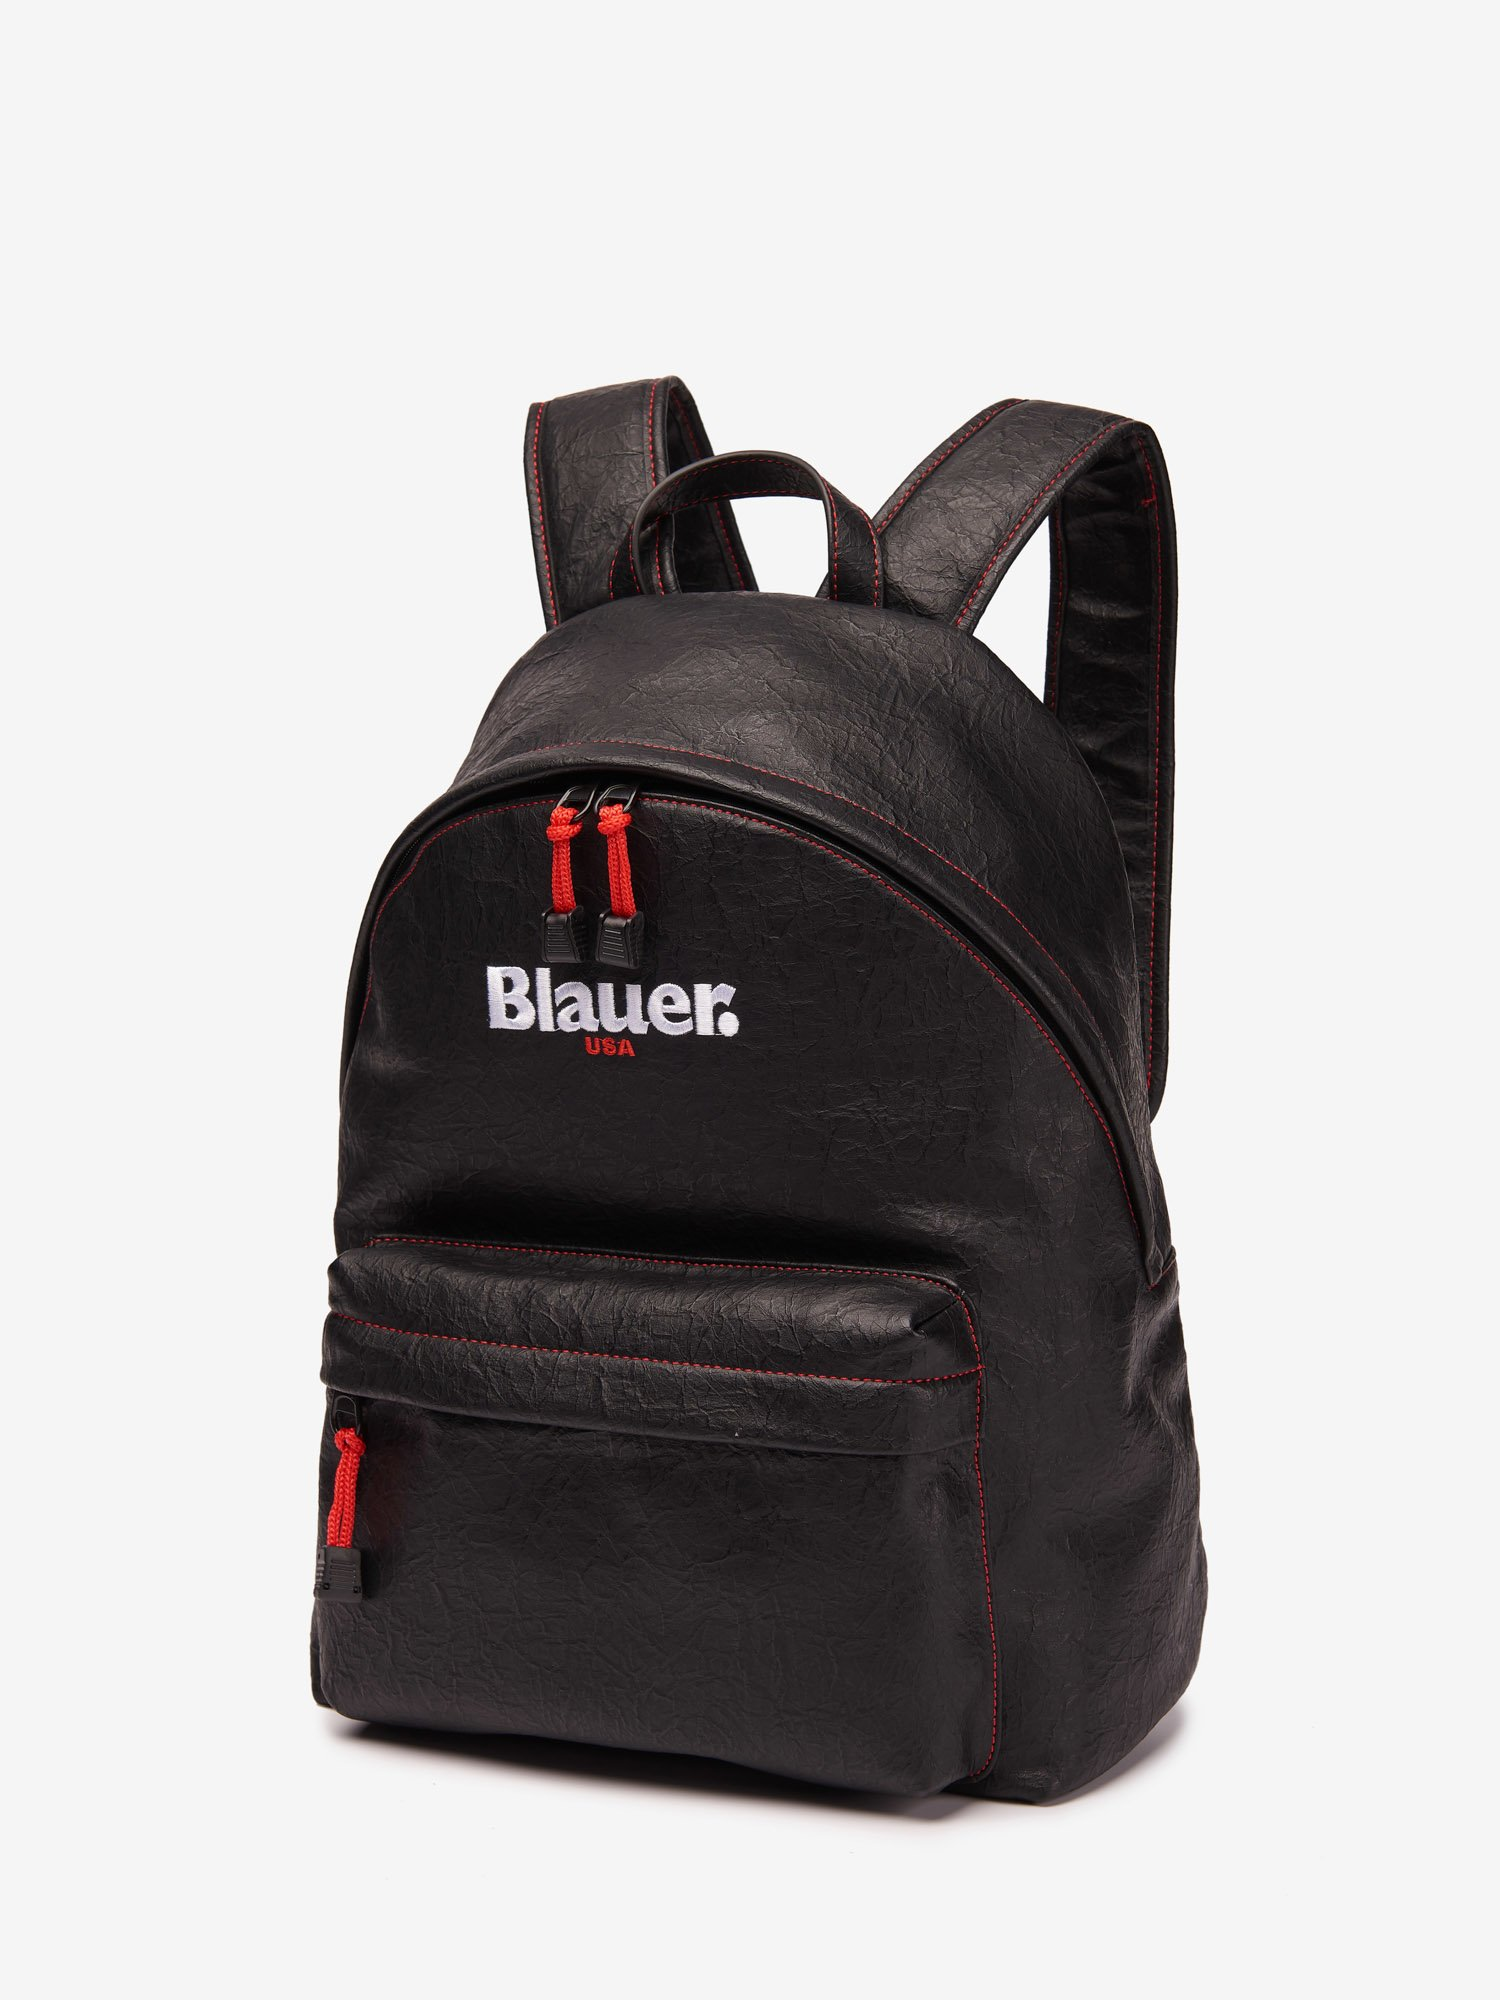 HERO BACKPACK - Blauer